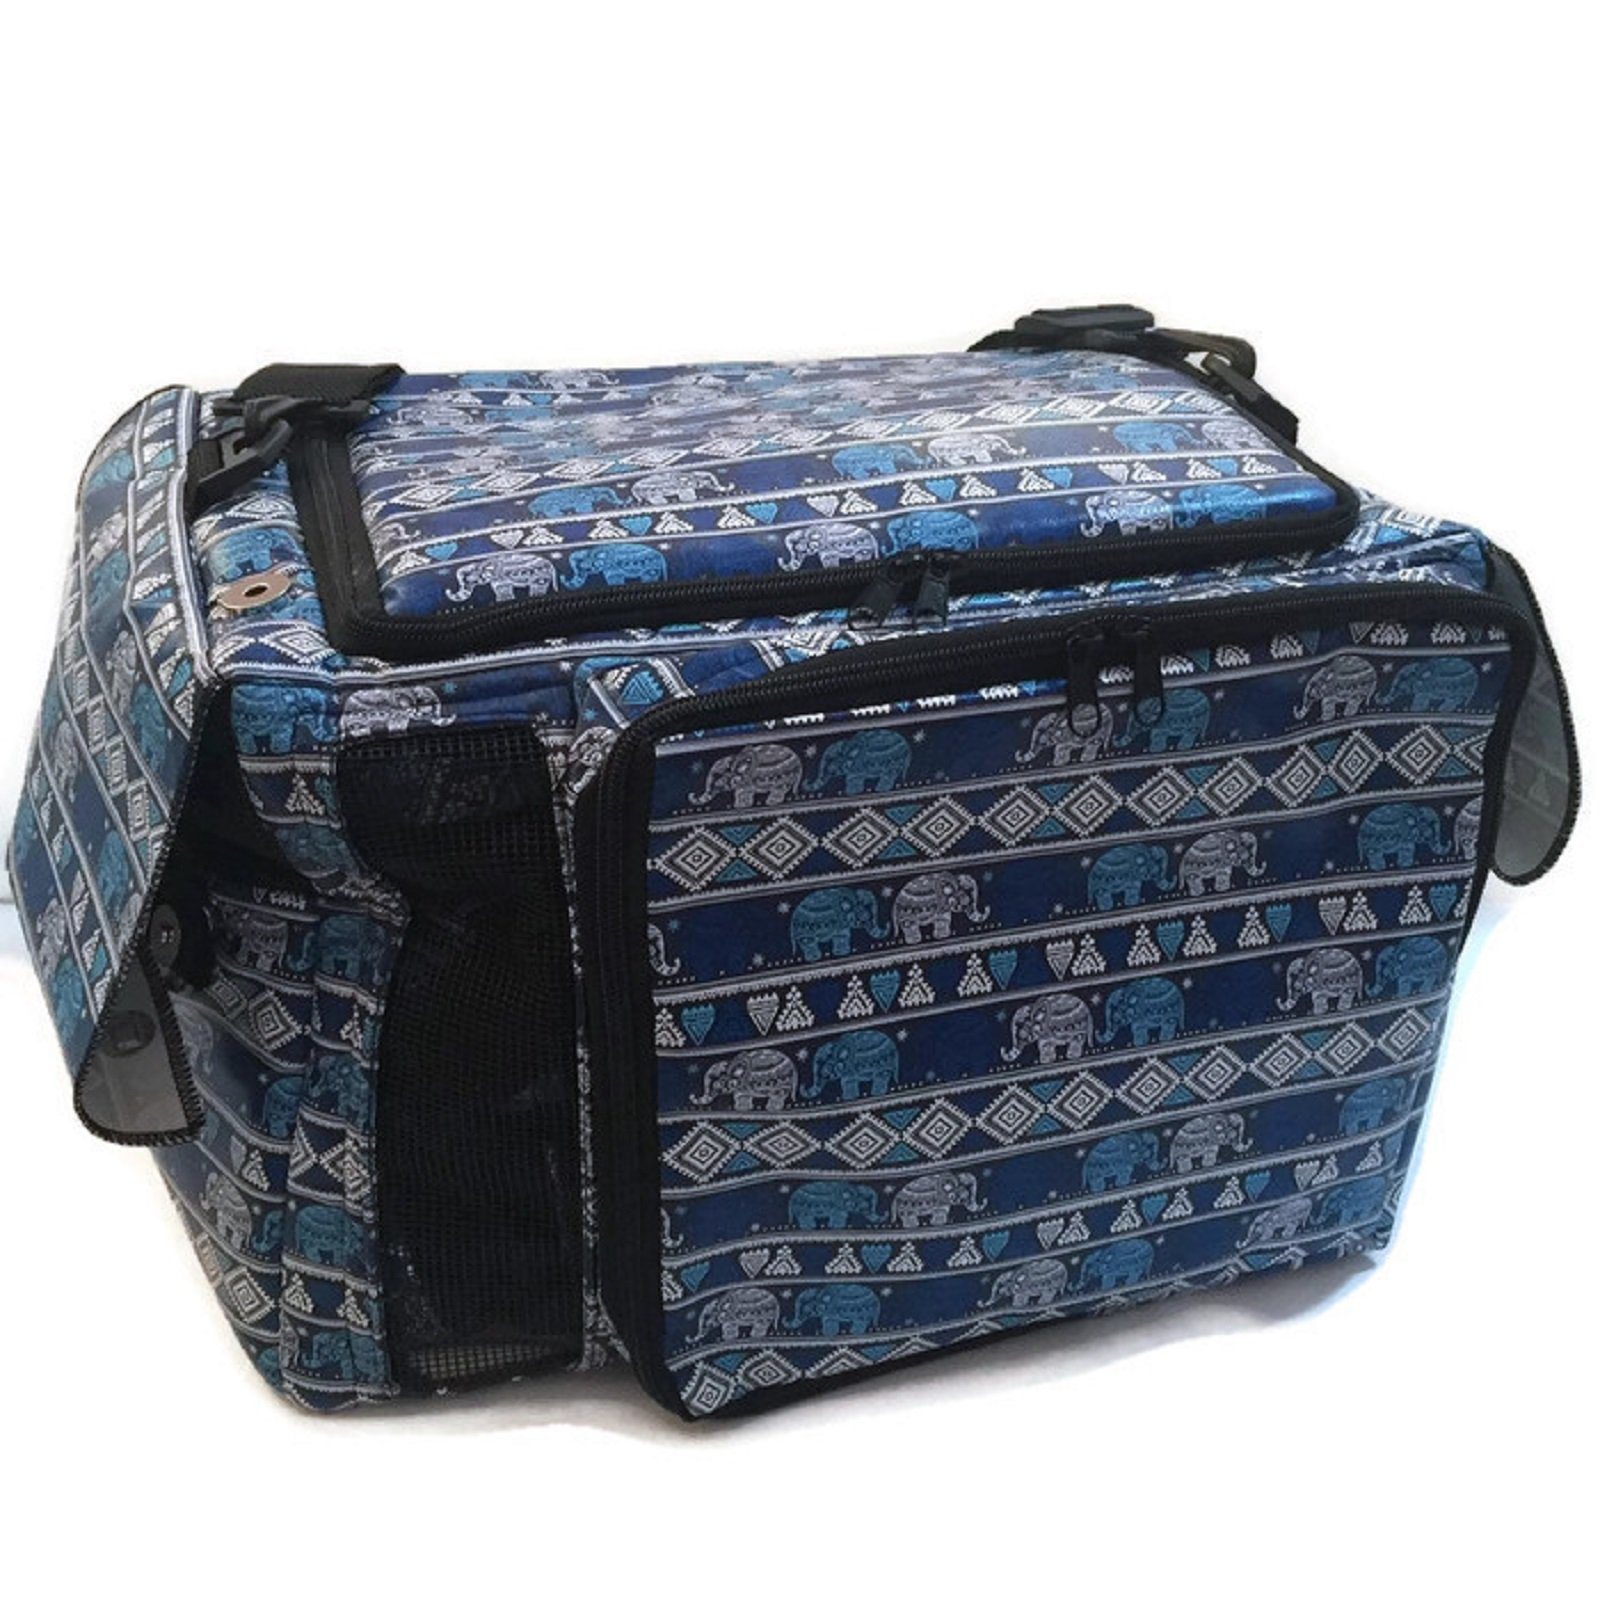 Large PU Leather Thailand Classic Blue Elephant Style Puppy Kitten Sugar Glider Birds Prairie dog Chinchillas Small Pet Travel Cage Shoulder Bag Kennel Carrier By Polar Bear's Republic